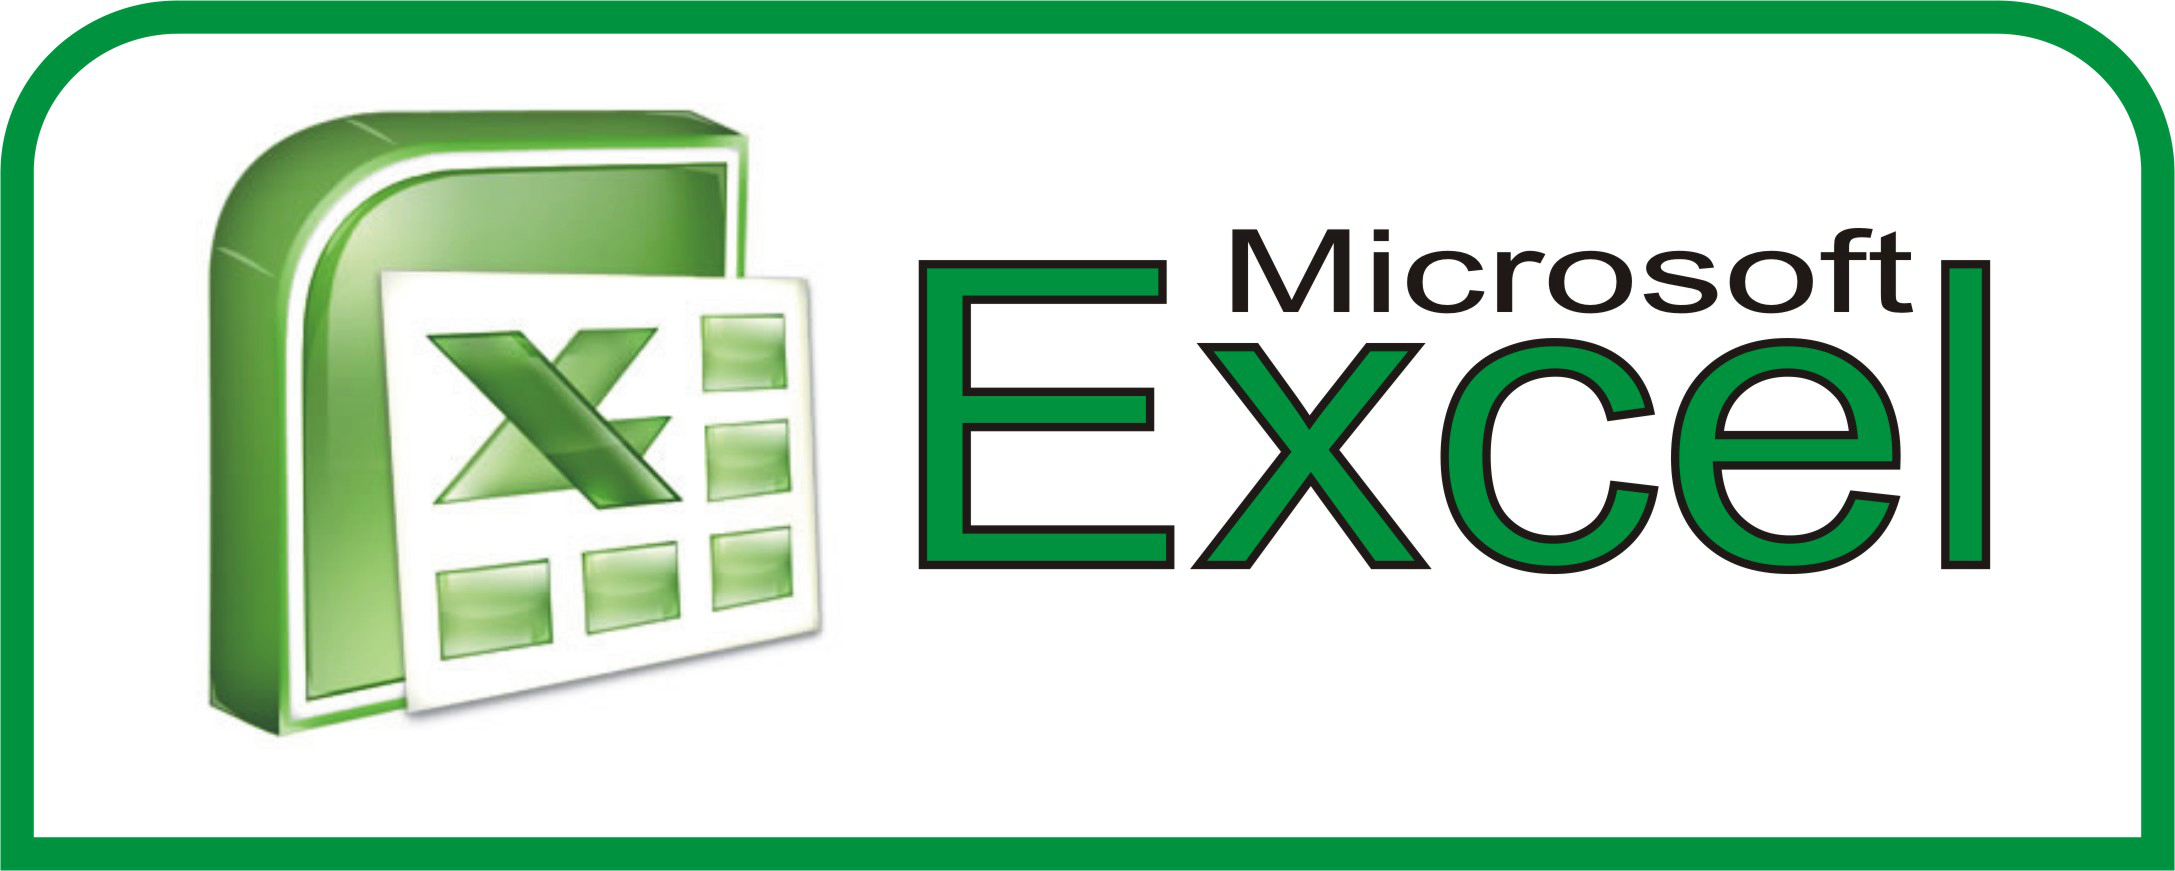 Ediblewildsus  Ravishing  Excel Shortcuts You Probably Didnt Know About  Techdissected With Handsome Switch Case Excel Besides Datediff In Excel  Furthermore Microsoft Excel Trademark With Astonishing Mid Find Excel Also Learn Excel Basics In Addition Count Excel Cells By Color And Learn Excel Basics As Well As Excel Jon Boats Additionally Travel Expense Report Excel From Techdissectedcom With Ediblewildsus  Handsome  Excel Shortcuts You Probably Didnt Know About  Techdissected With Astonishing Switch Case Excel Besides Datediff In Excel  Furthermore Microsoft Excel Trademark And Ravishing Mid Find Excel Also Learn Excel Basics In Addition Count Excel Cells By Color From Techdissectedcom